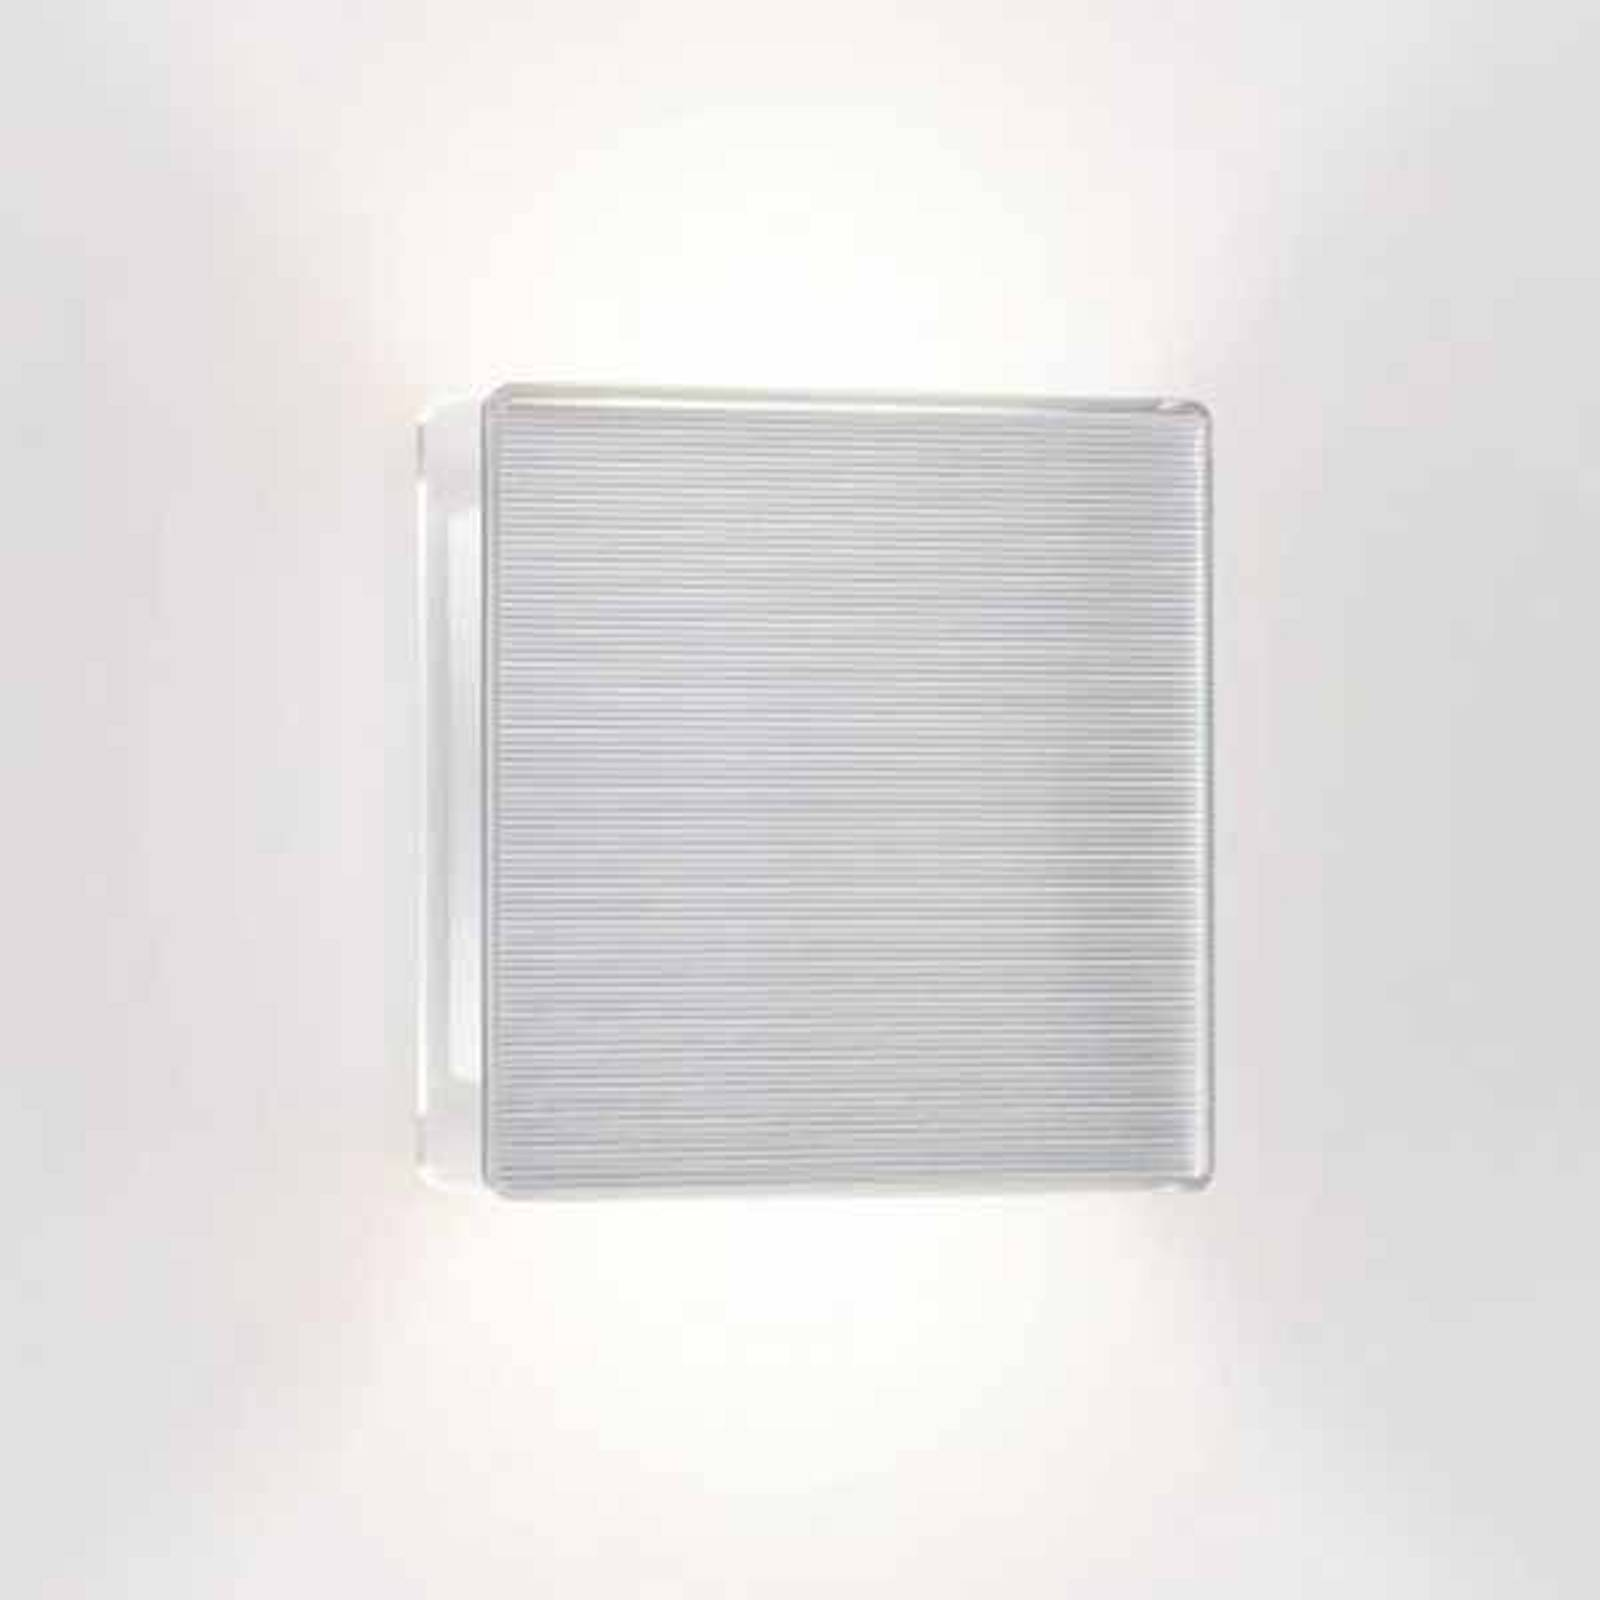 LED wall light App with ribbed front from Serien Lighting